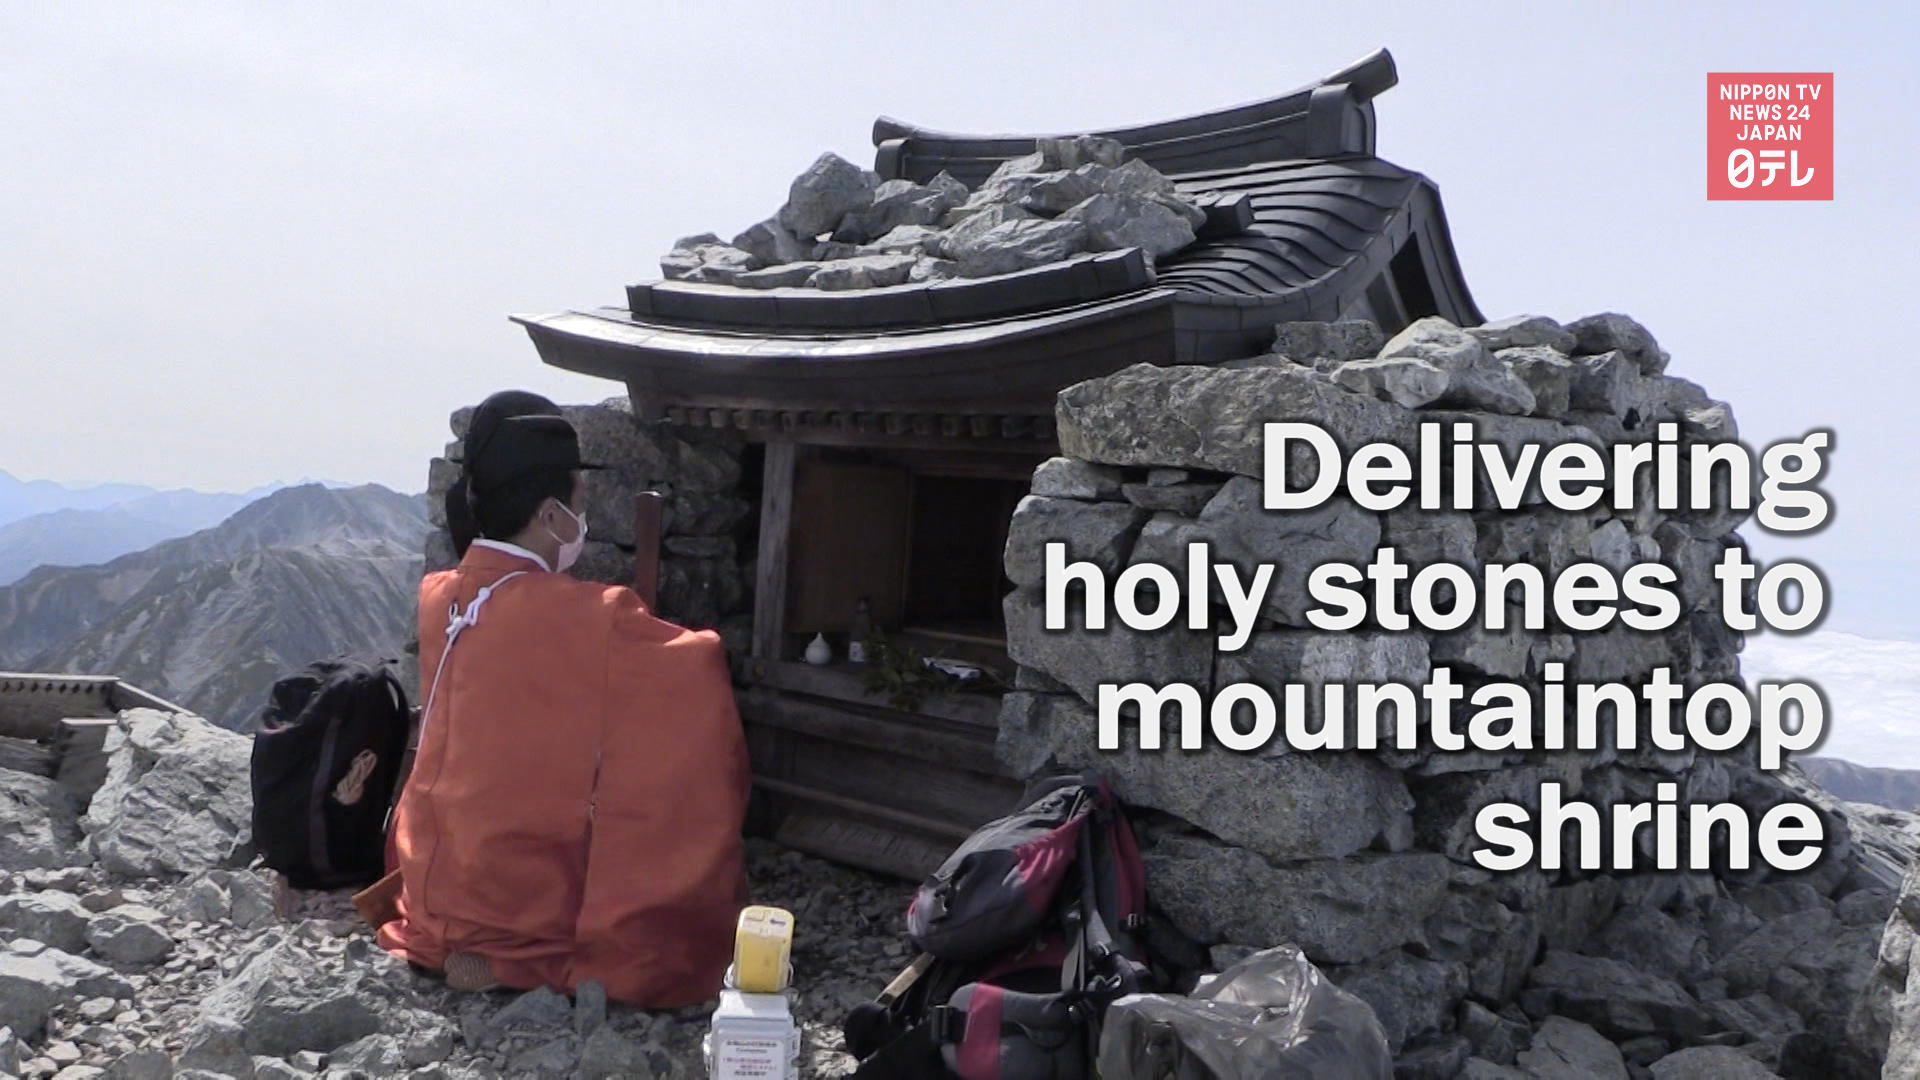 Delivering sacred stones to mountaintop shrine